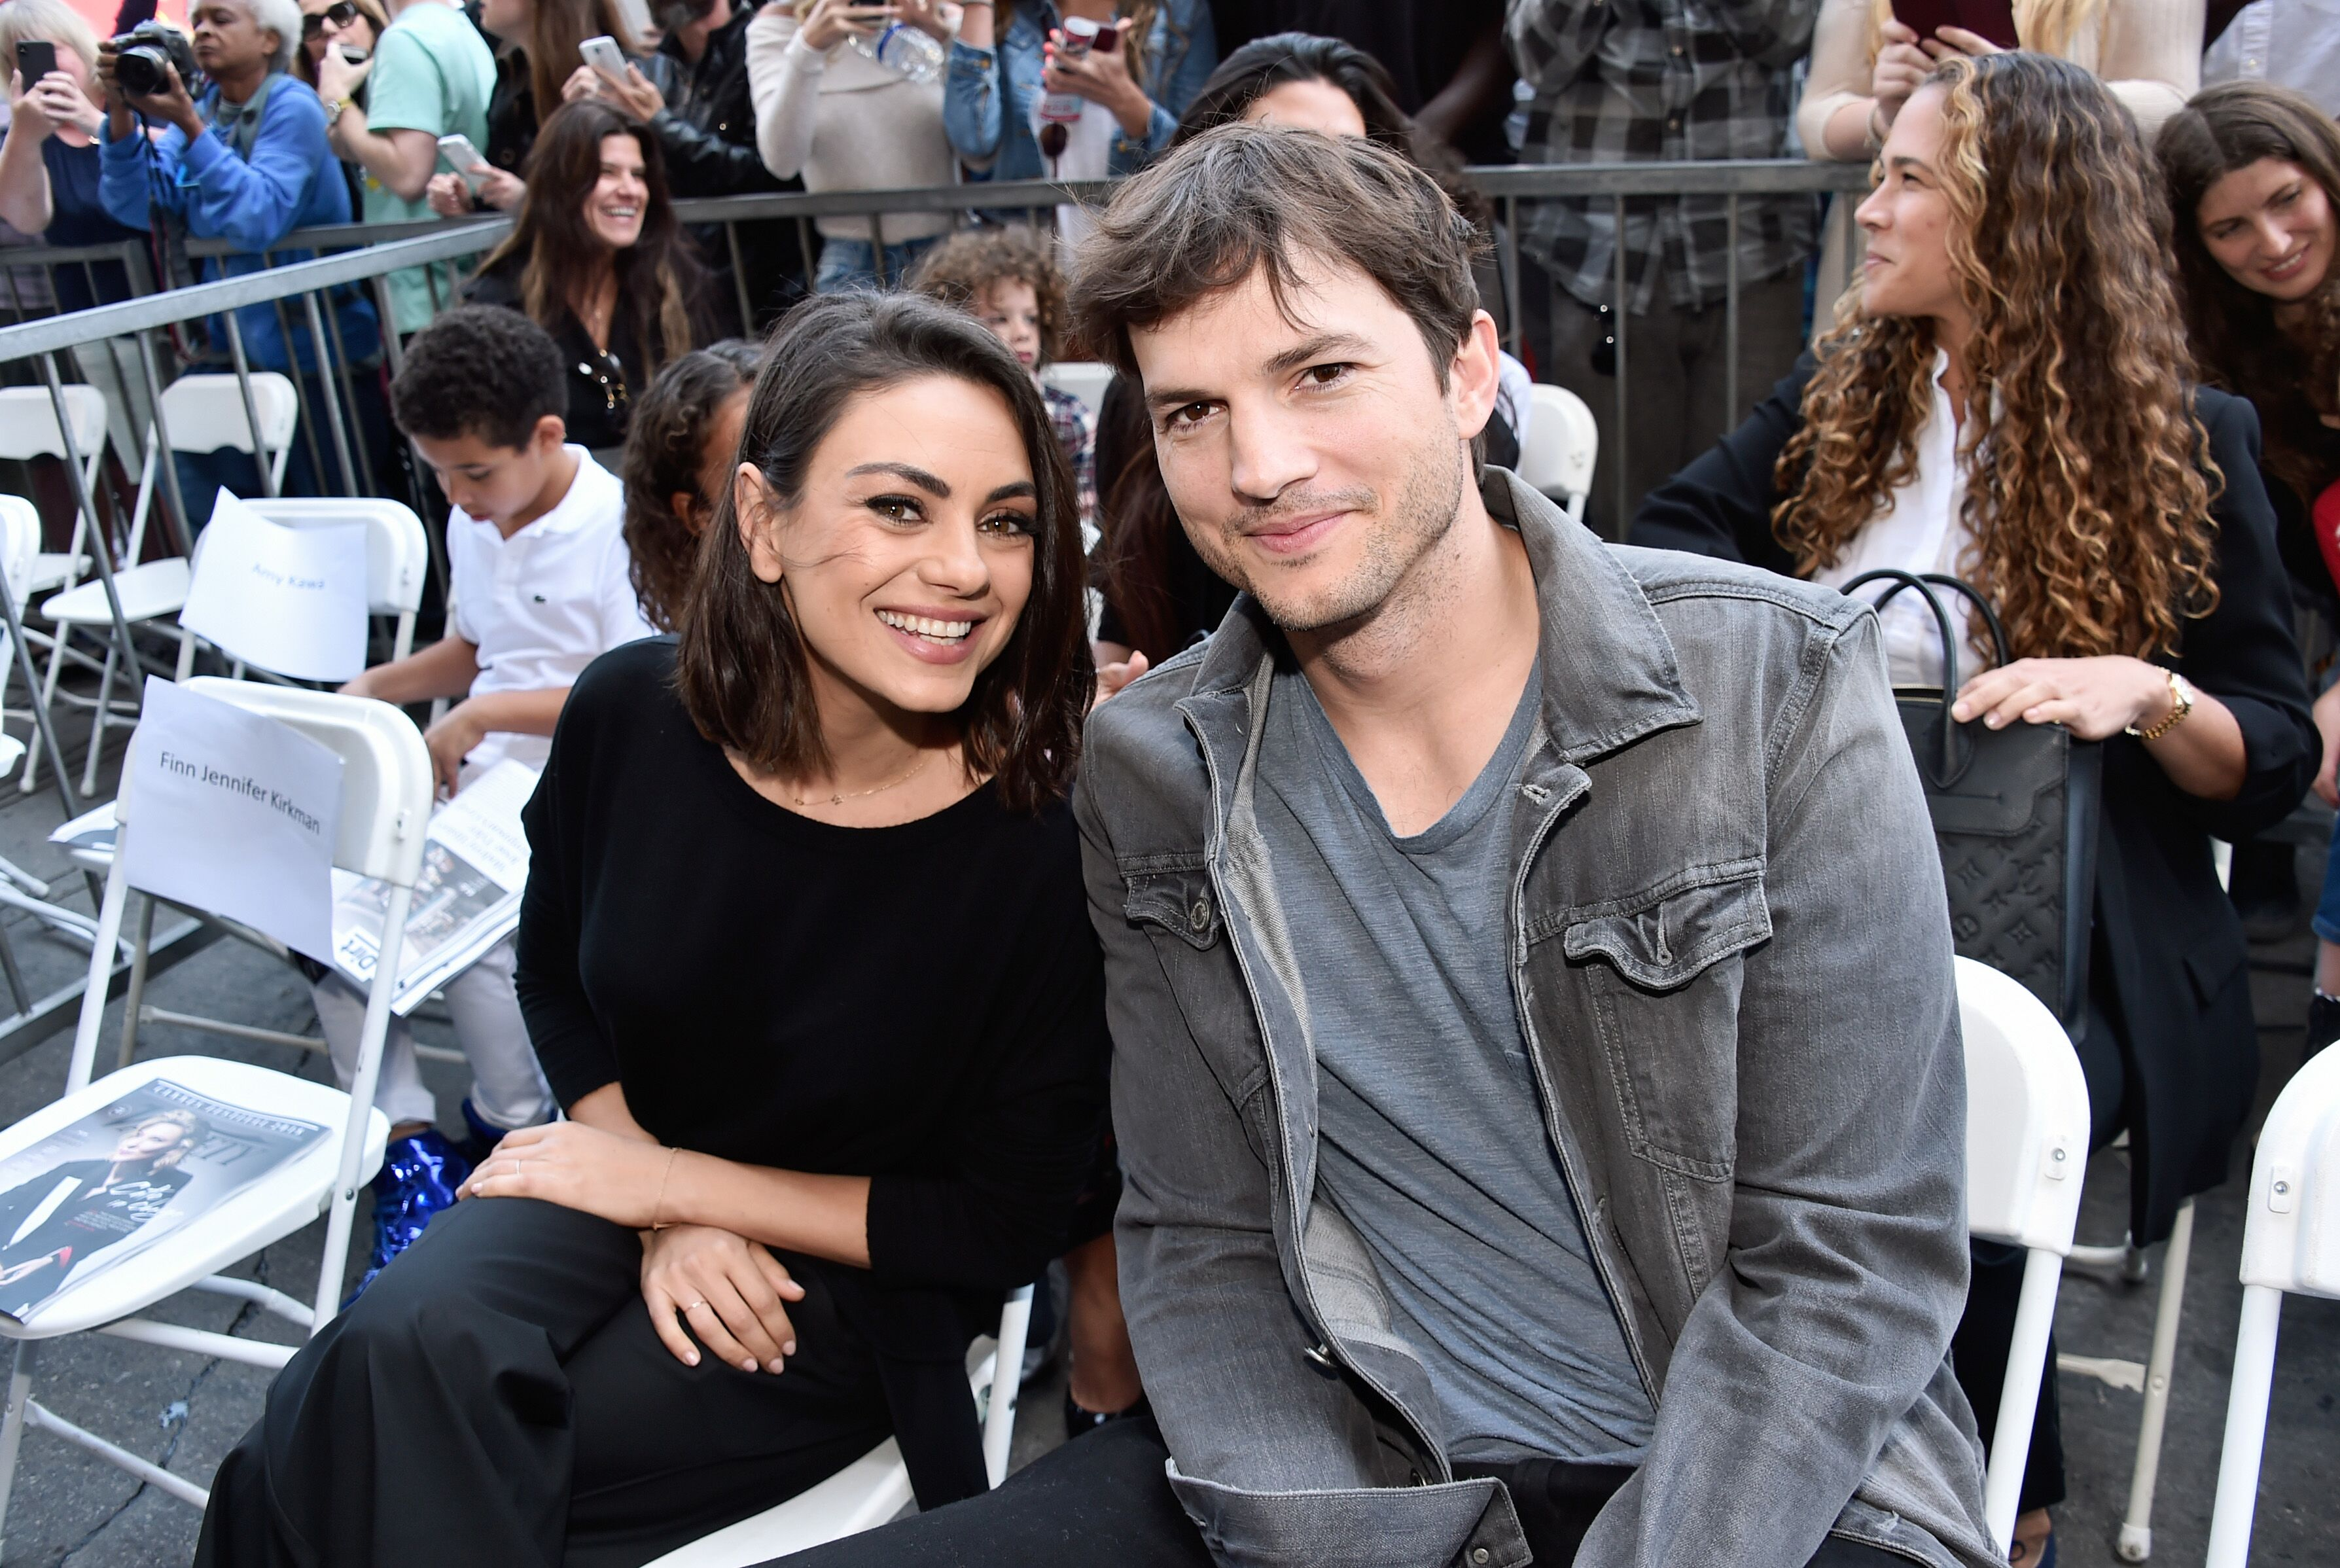 Mila Kunis and Ashton Kutcher at the Zoe Saldana Walk Of Fame Star Ceremony. | Source: Getty Images